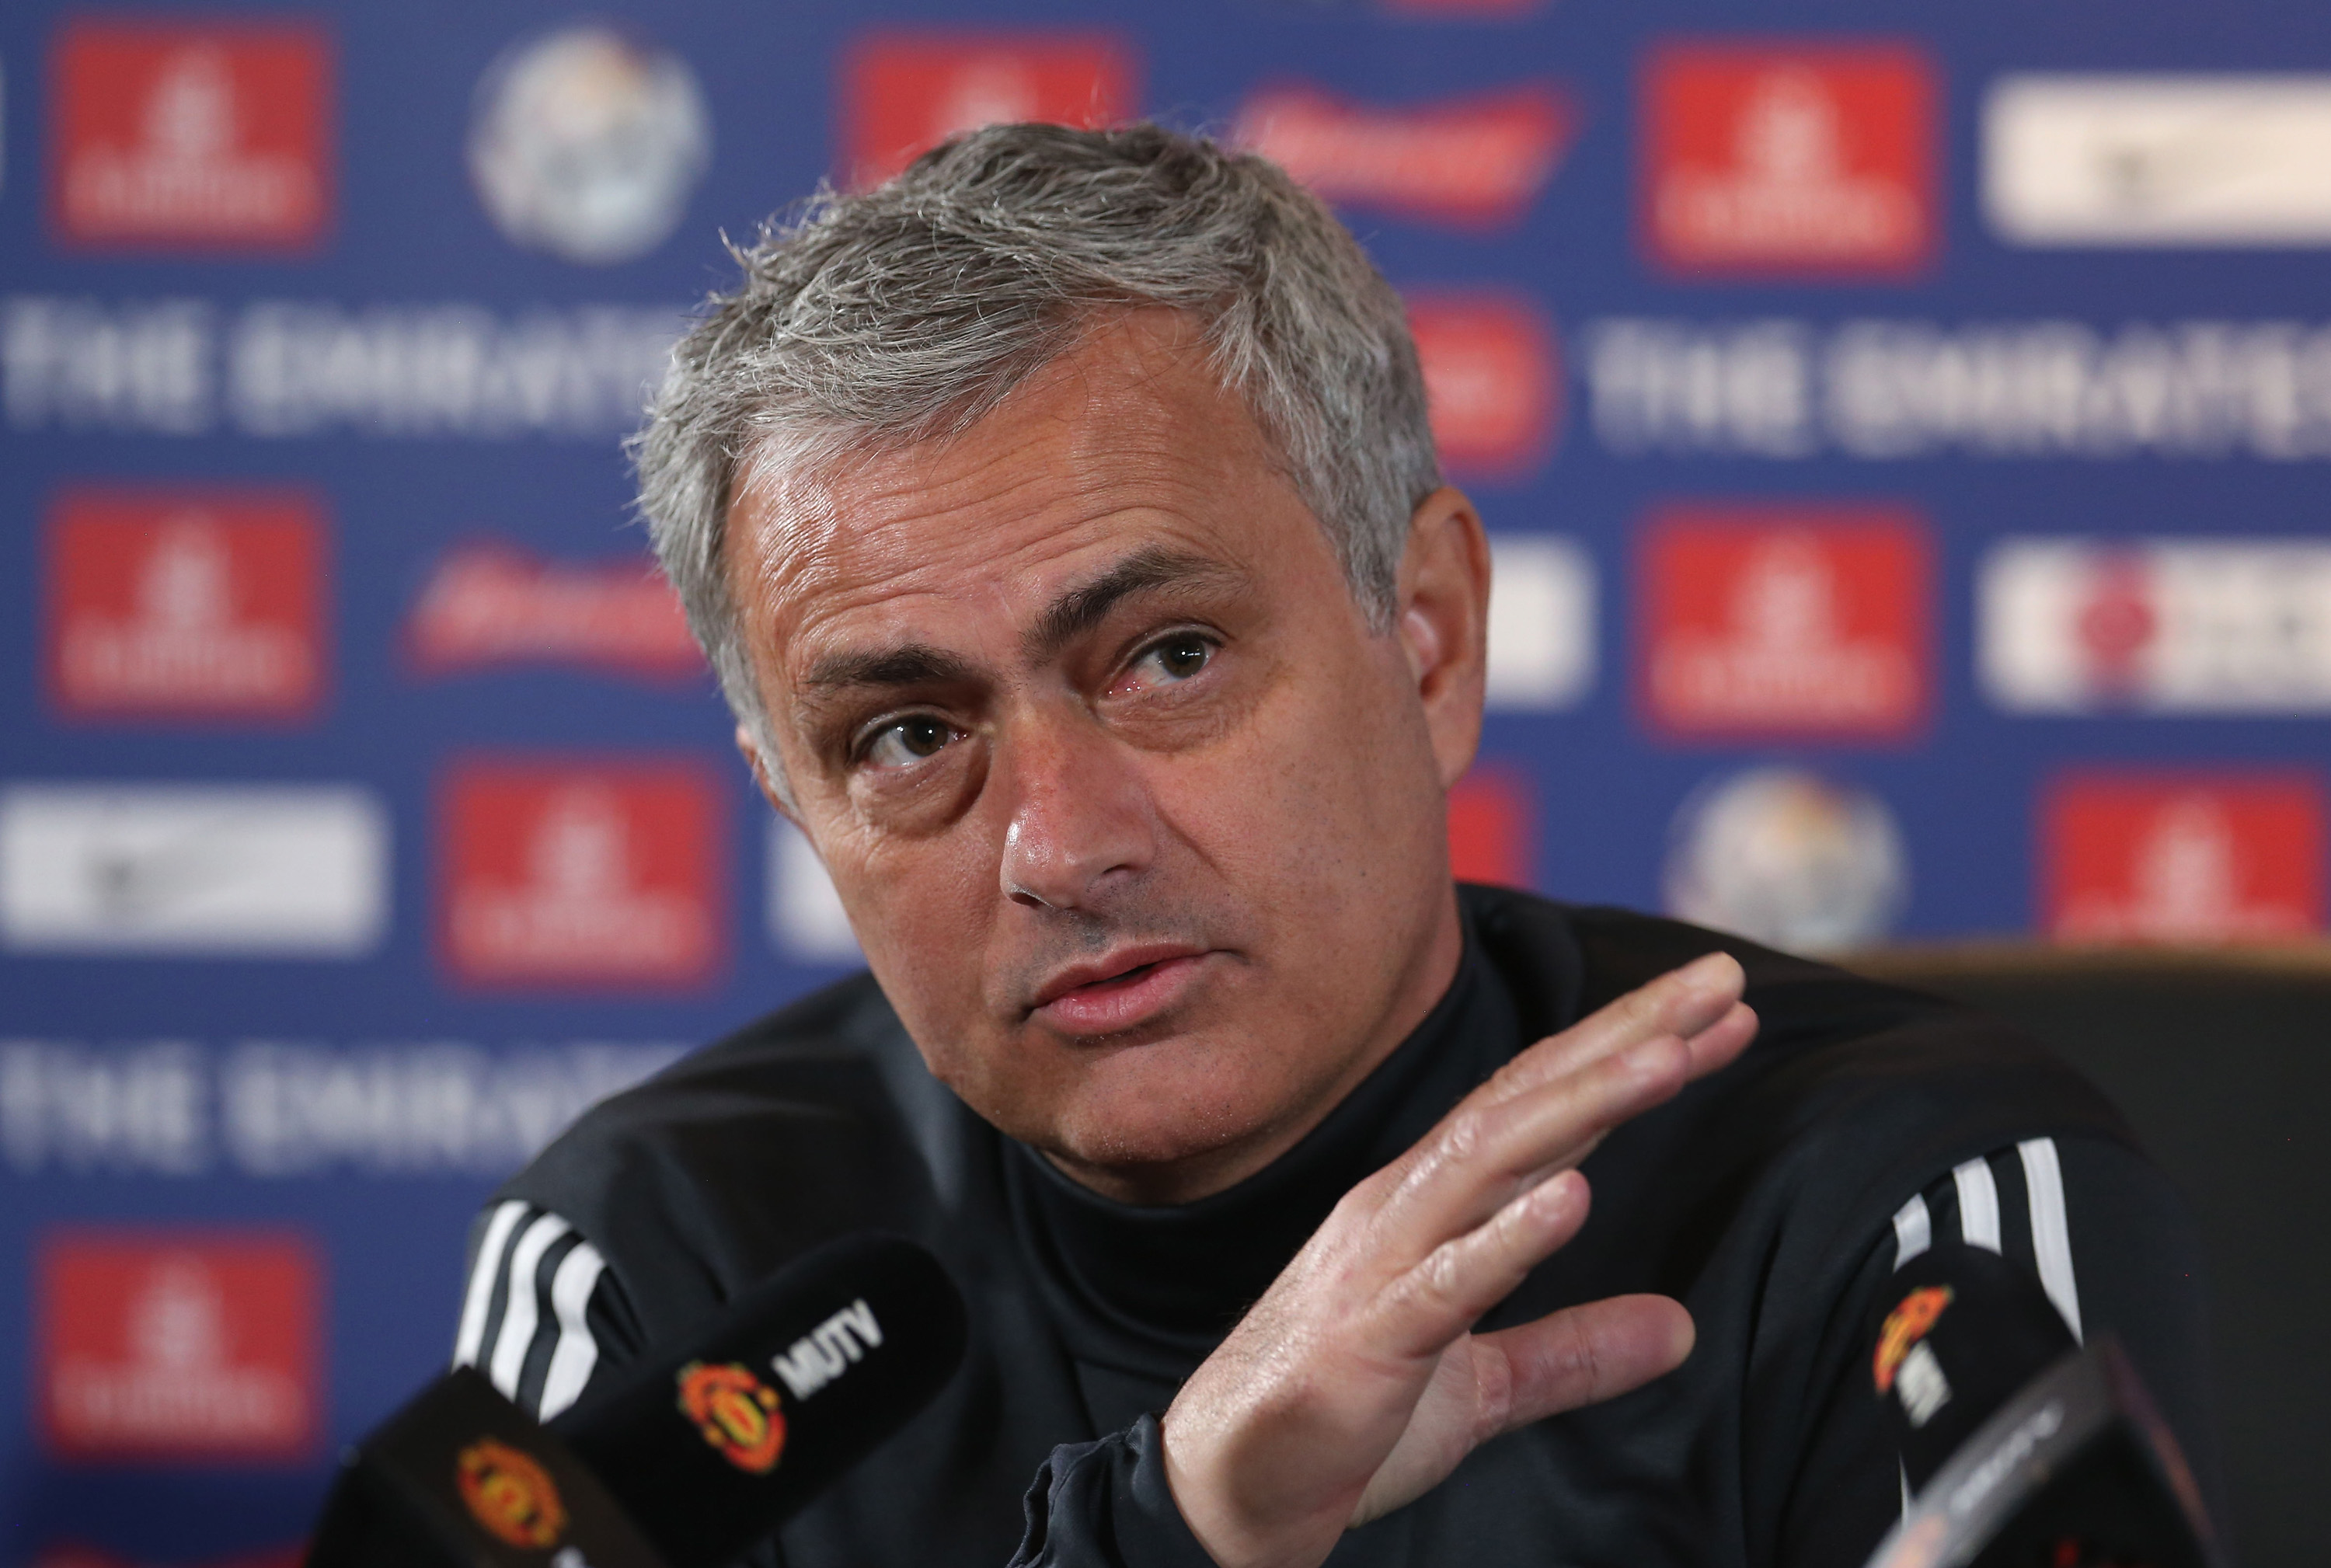 MANCHESTER, ENGLAND - JANUARY 25:  (EXCLUSIVE COVERAGE) Manager Jose Mourinho of Manchester United speaks during a press conference at Aon Training Complex on January 25, 2018 in Manchester, England.  (Photo by Matthew Peters/Man Utd via Getty Images)  Getty, TL